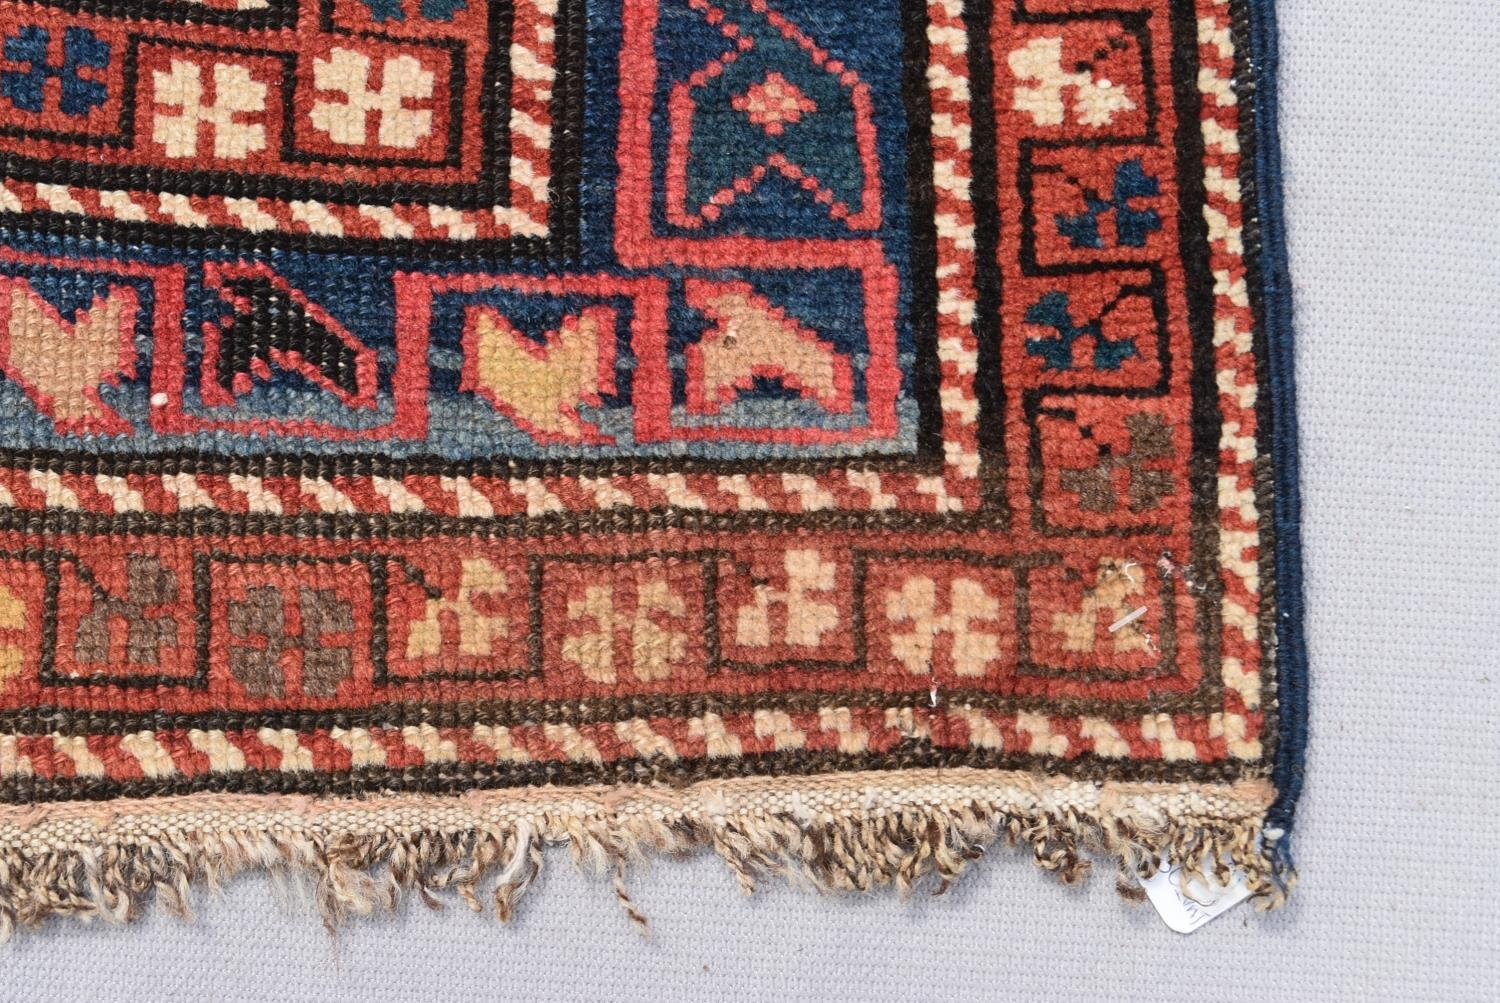 An antique Kazak rug with repeating central medallions and flowerhead and animal motifs contained - Image 3 of 5